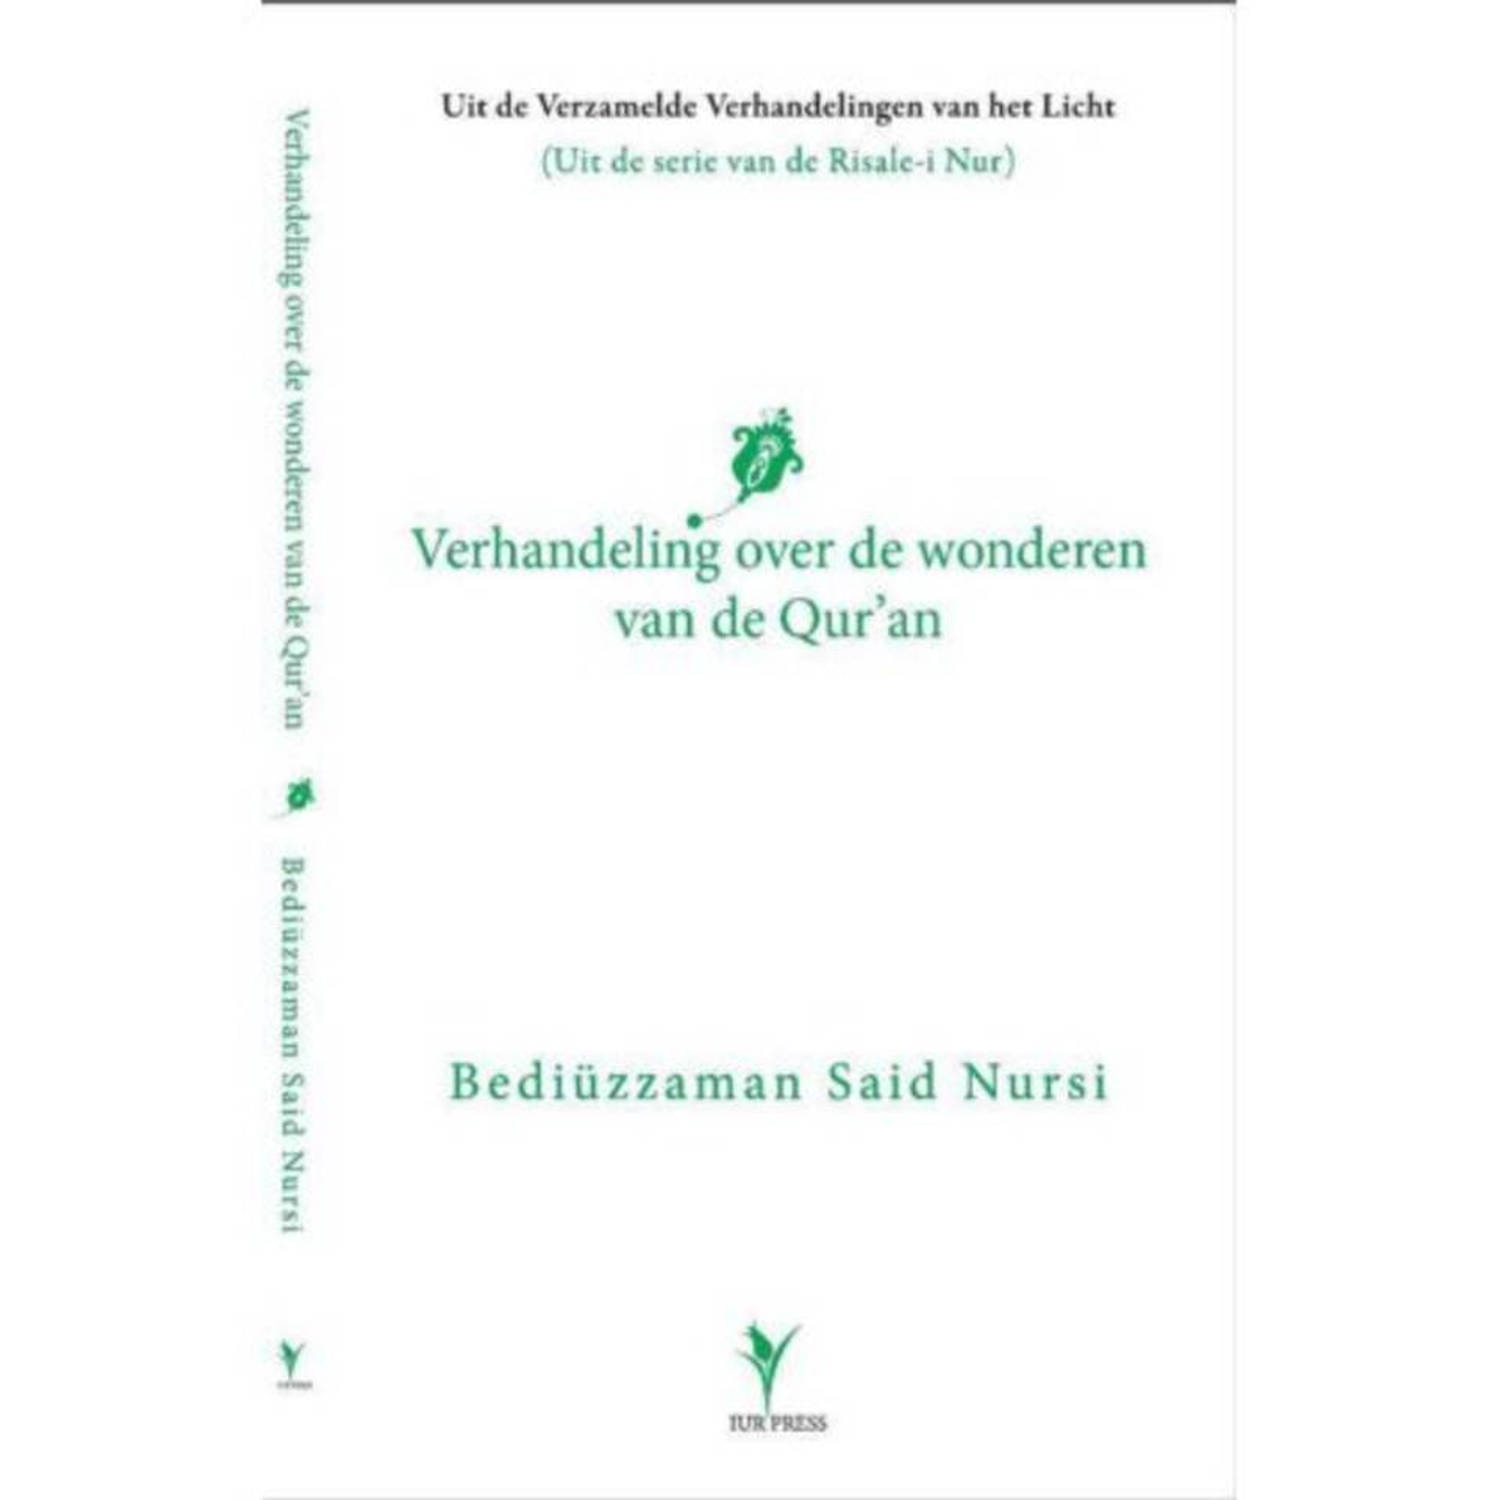 Verhandeling over de wonderen van de Qur'an -